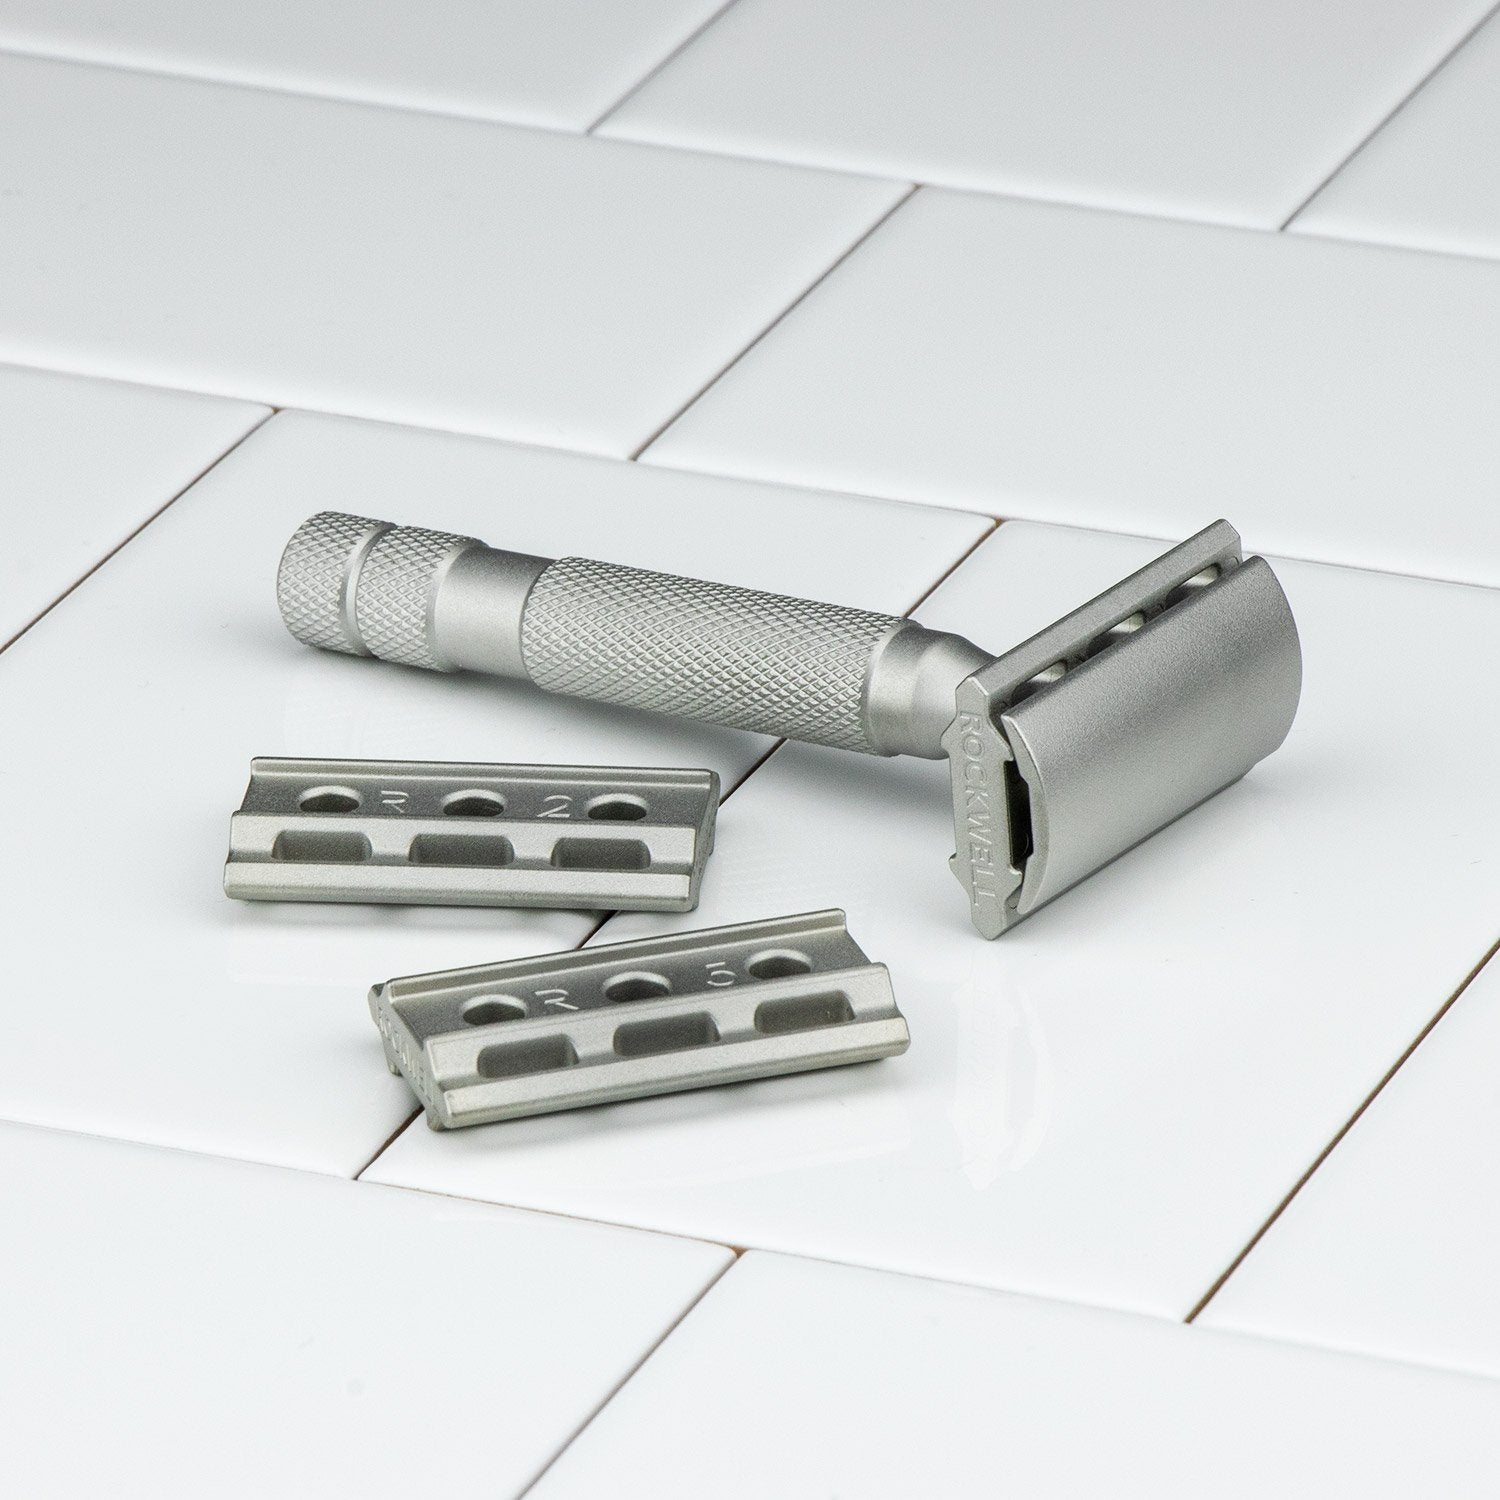 Rockwell Razors 6S Stainless Steel DE Safety Razor